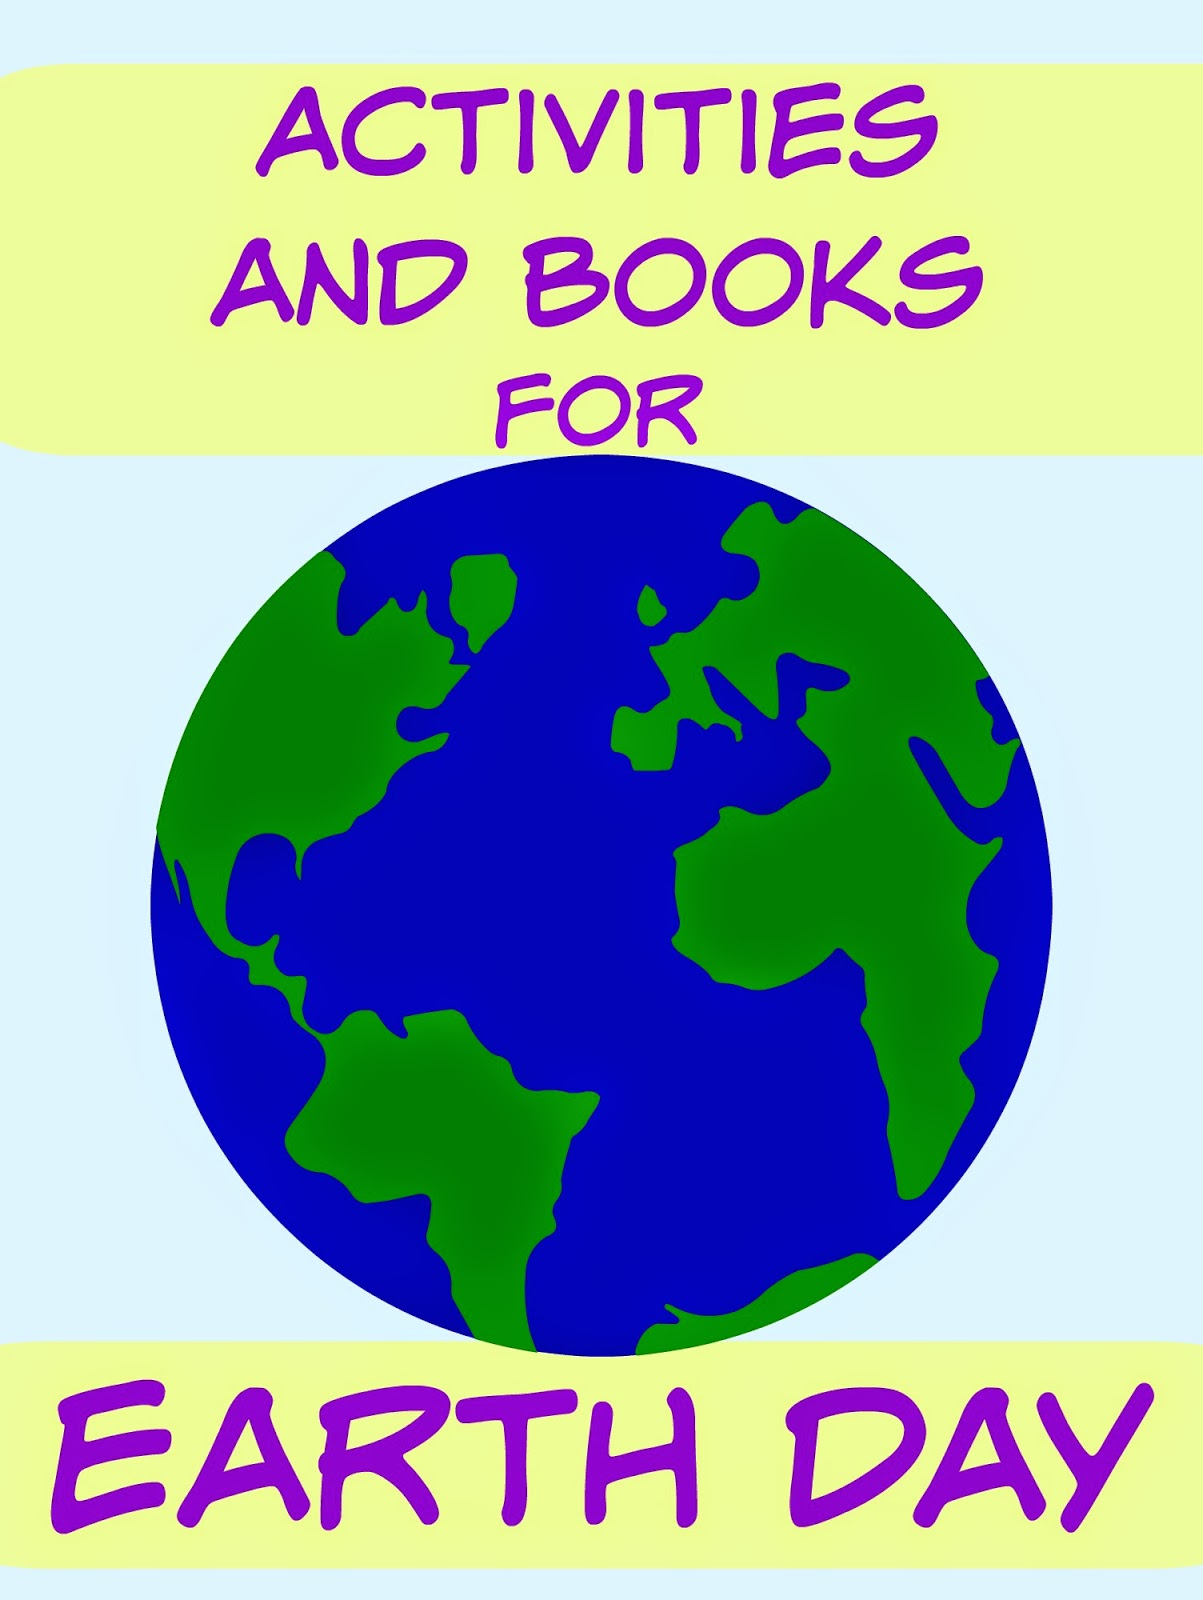 Earth Day Activities And Books At Mom S Library